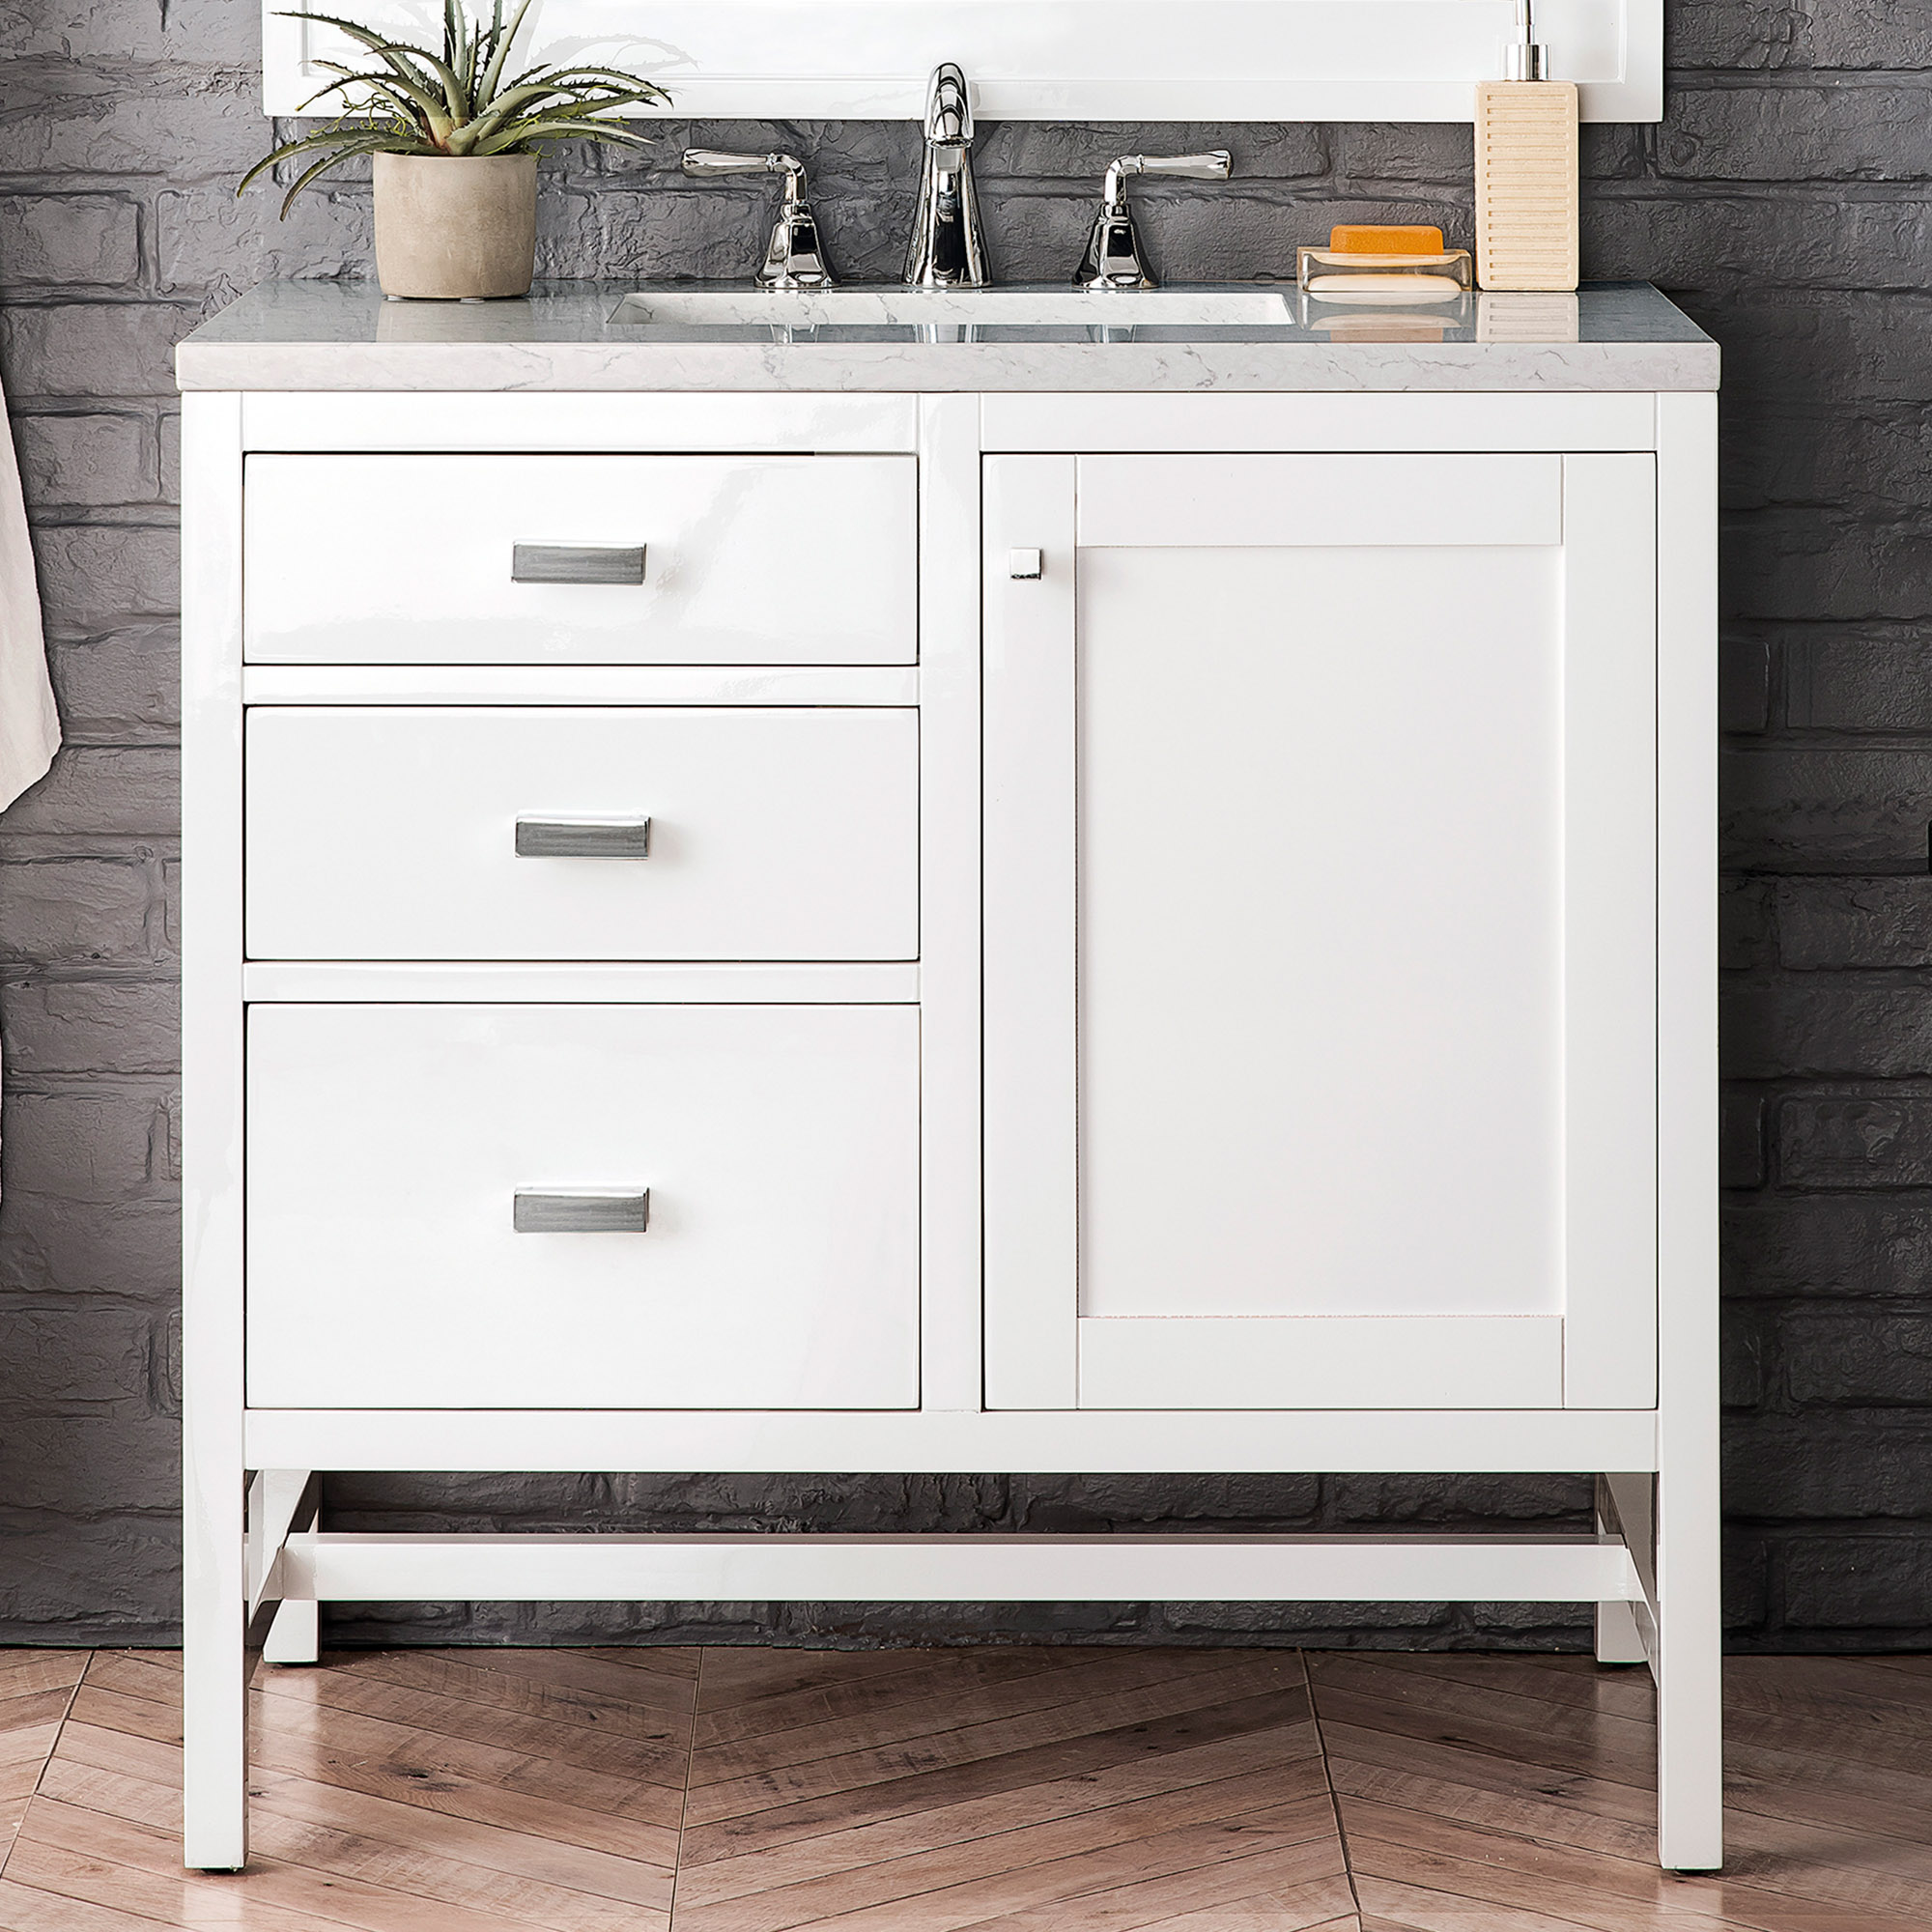 """James Martin Addison Collection 36"""" Single Vanity Cabinet (w/Doors), Glossy White"""